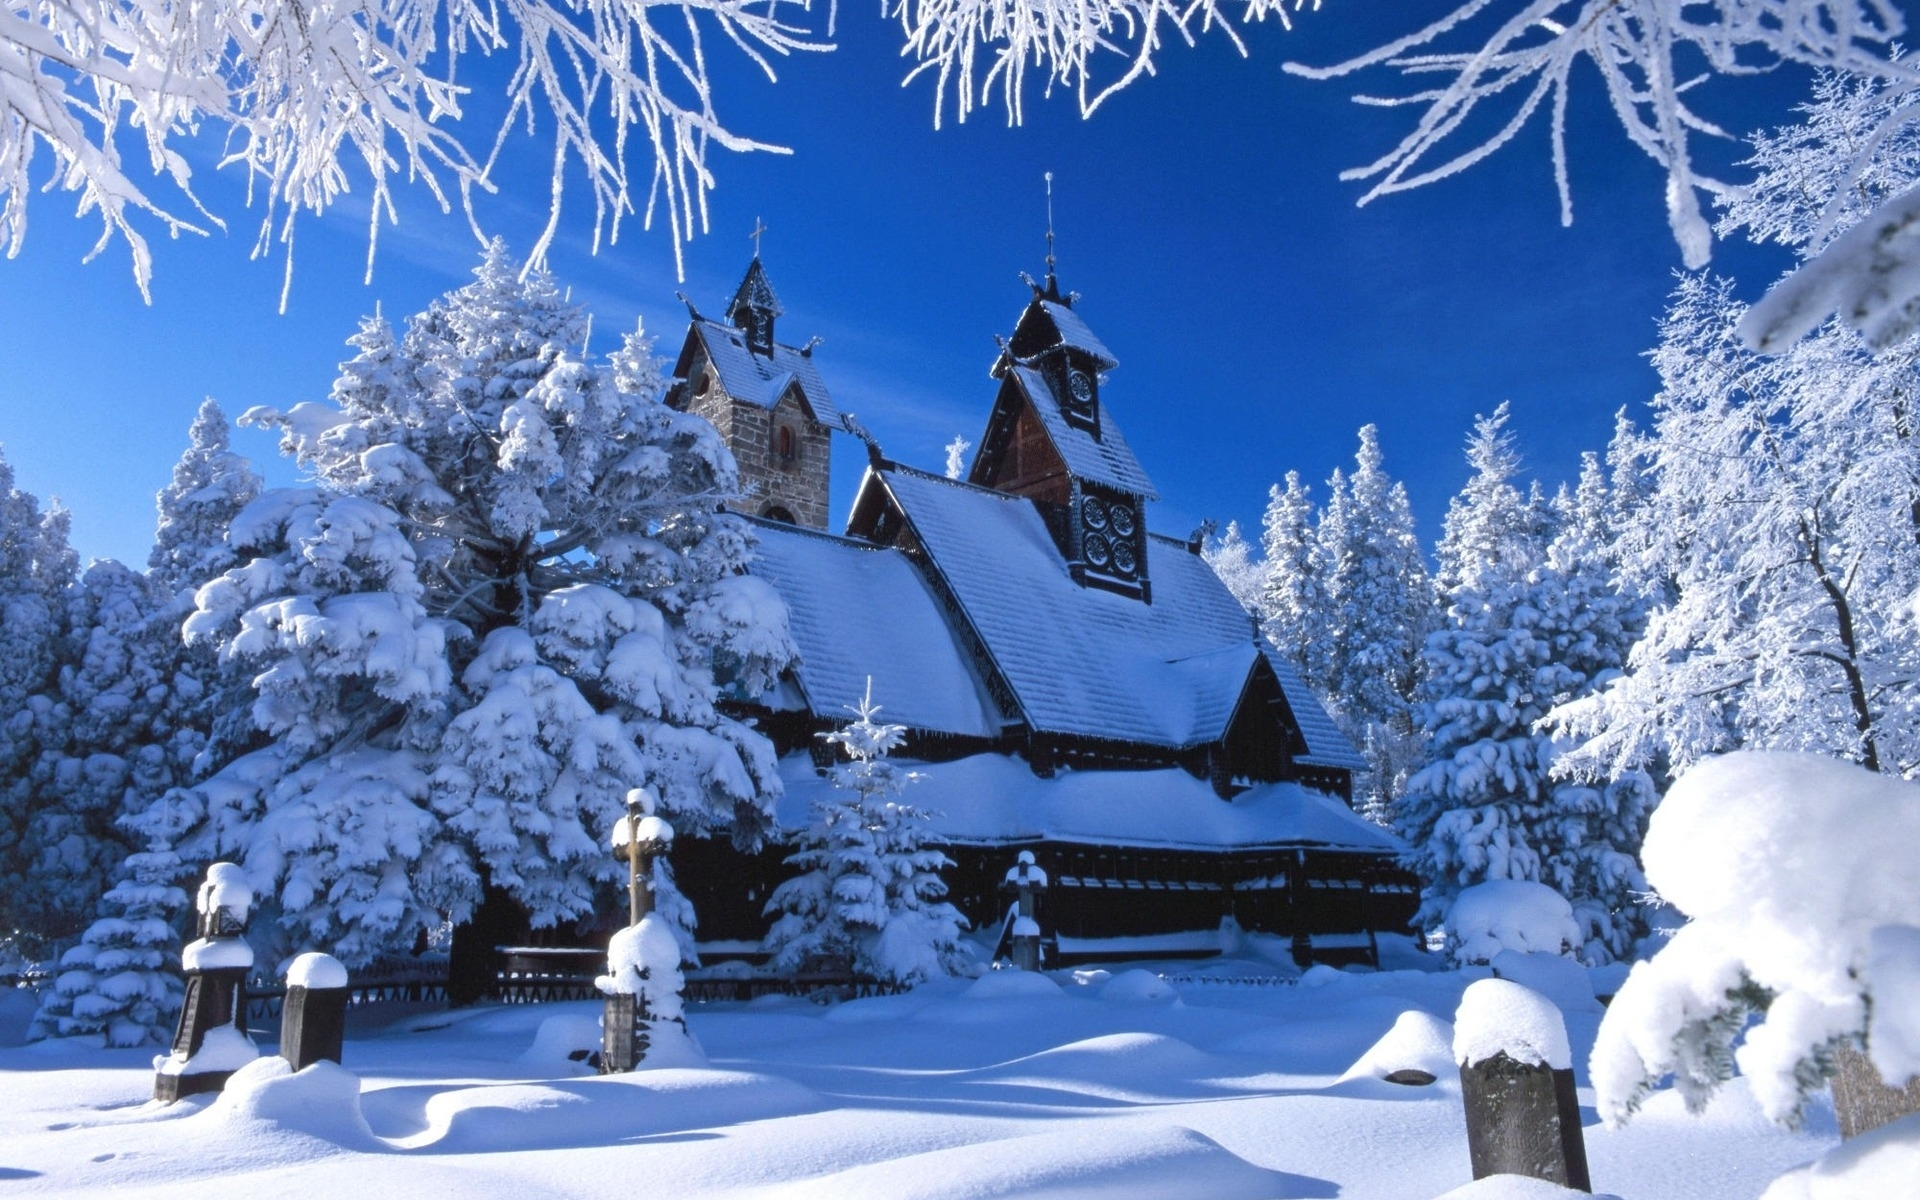 42972 download wallpaper Landscape, Winter screensavers and pictures for free